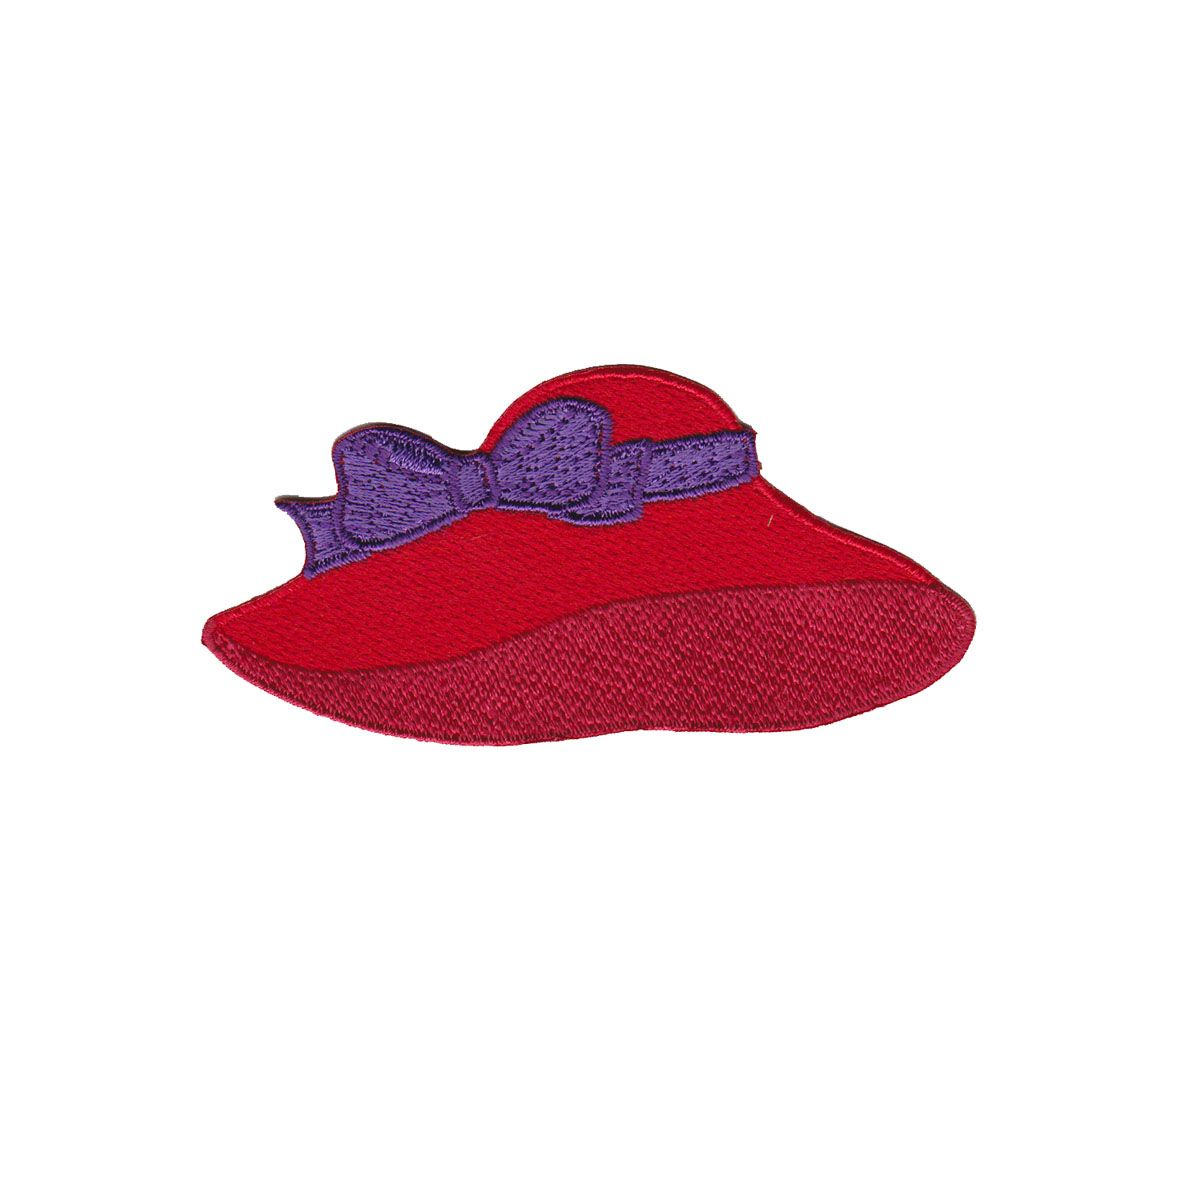 APPLIQUES IRON ON RED HAT SOCIETY EMBROIDERED FABRIC